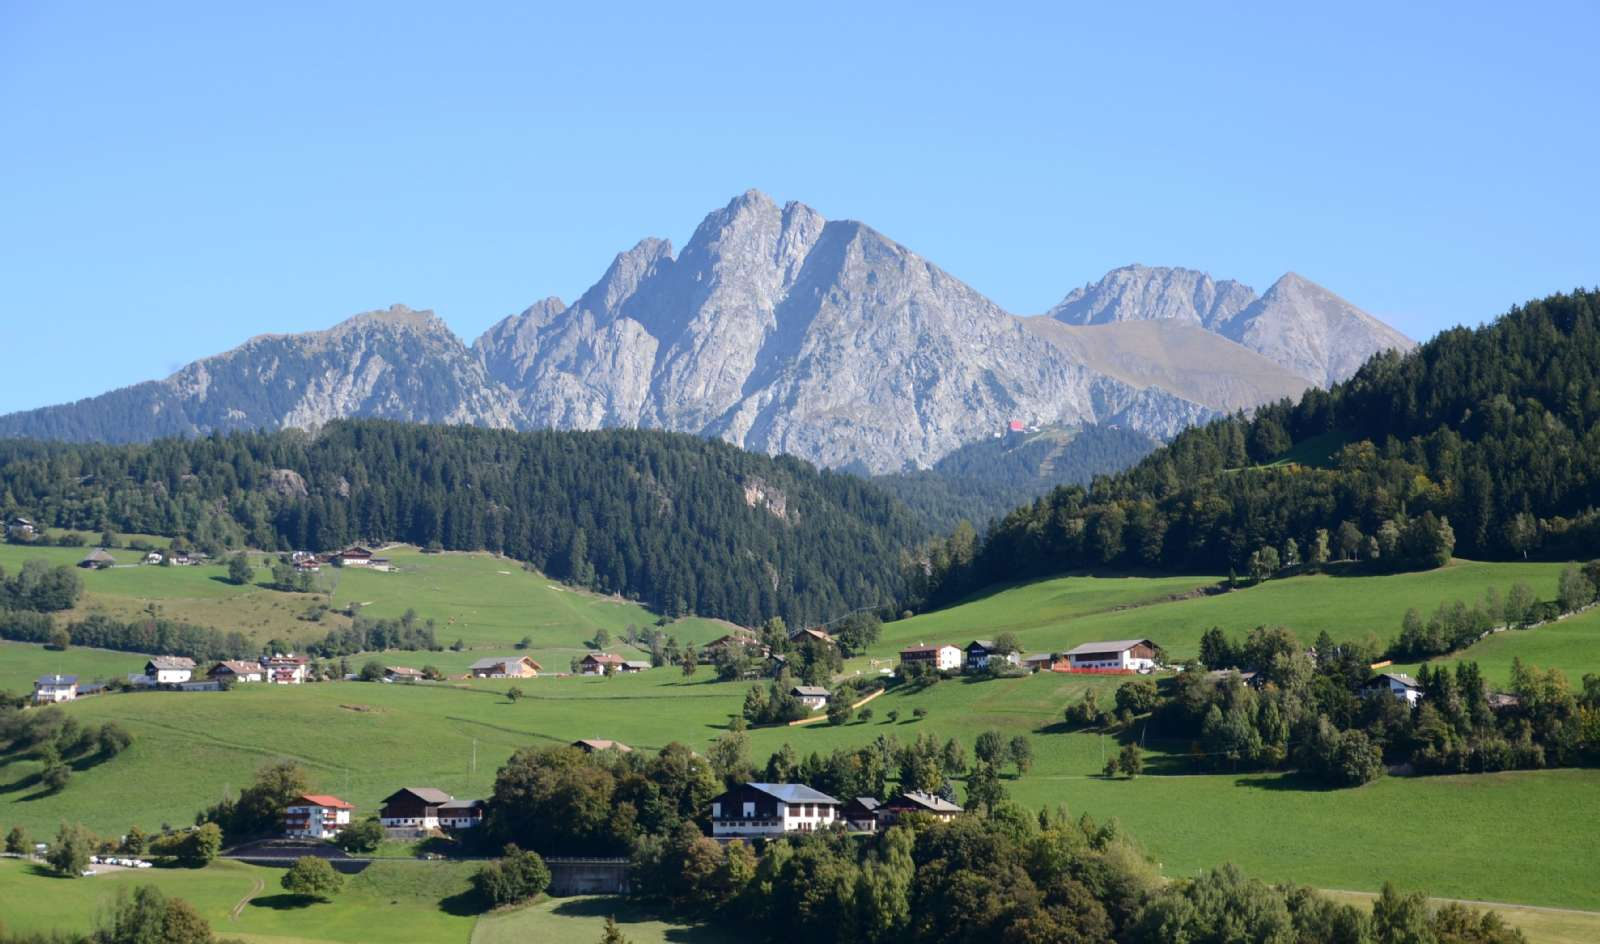 Magnificent mountain scenery near the border with Austria